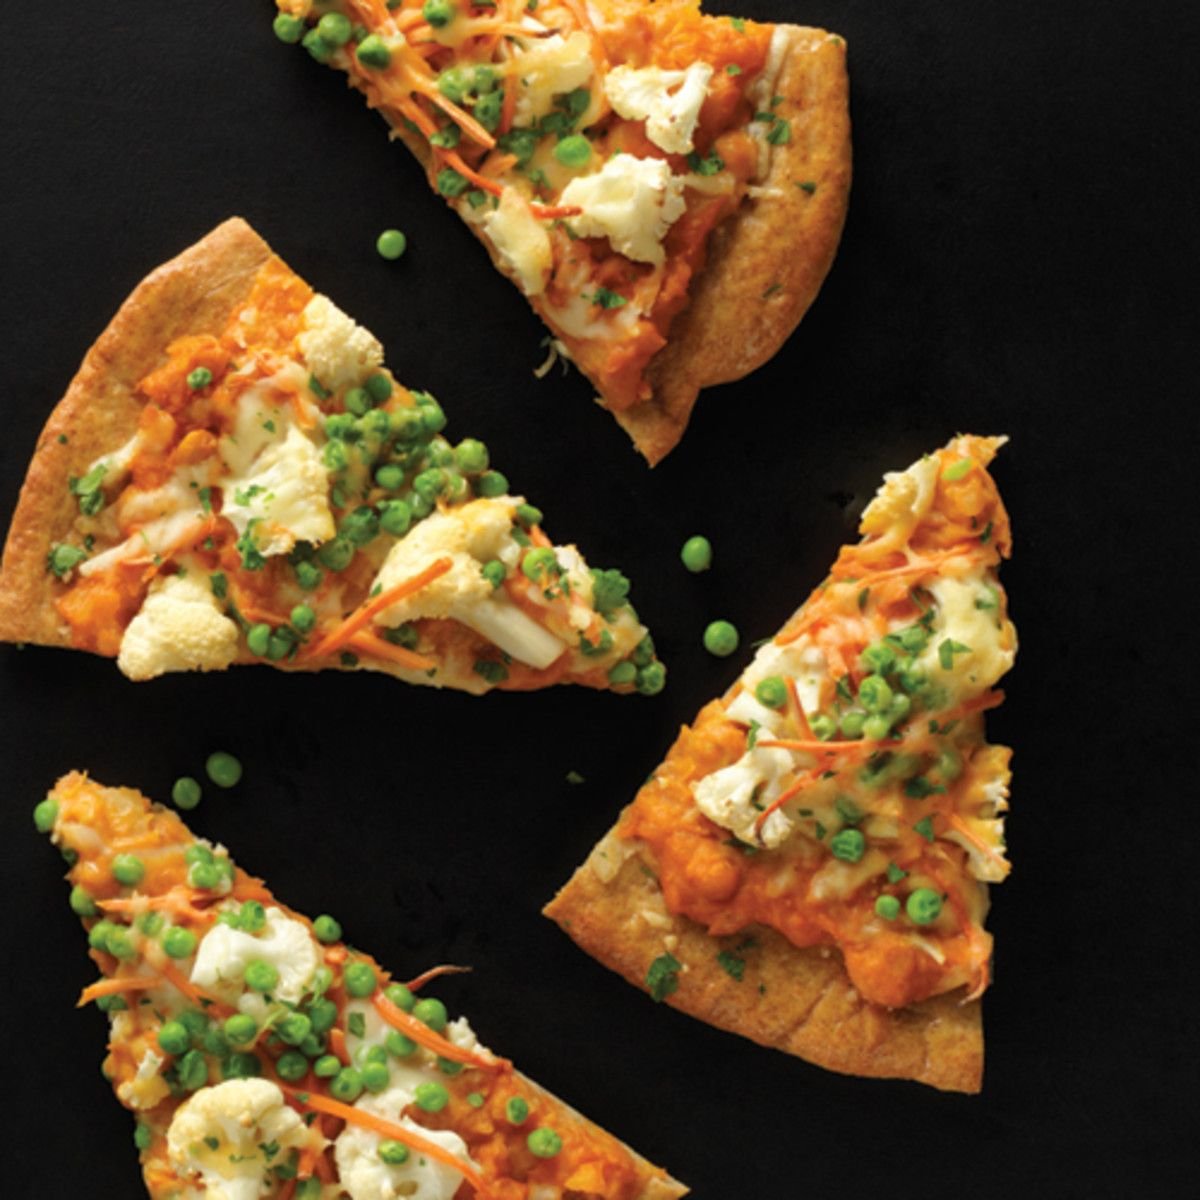 Coconut milk, curry paste, potatoes and chickpeas are simmered together to create the ultimate flavorful sauce in this scrumptious pizza. Colorful carrots, peas, cauliflower and cilantro leaves top it off for a vibrant, crowd pleasing meal.